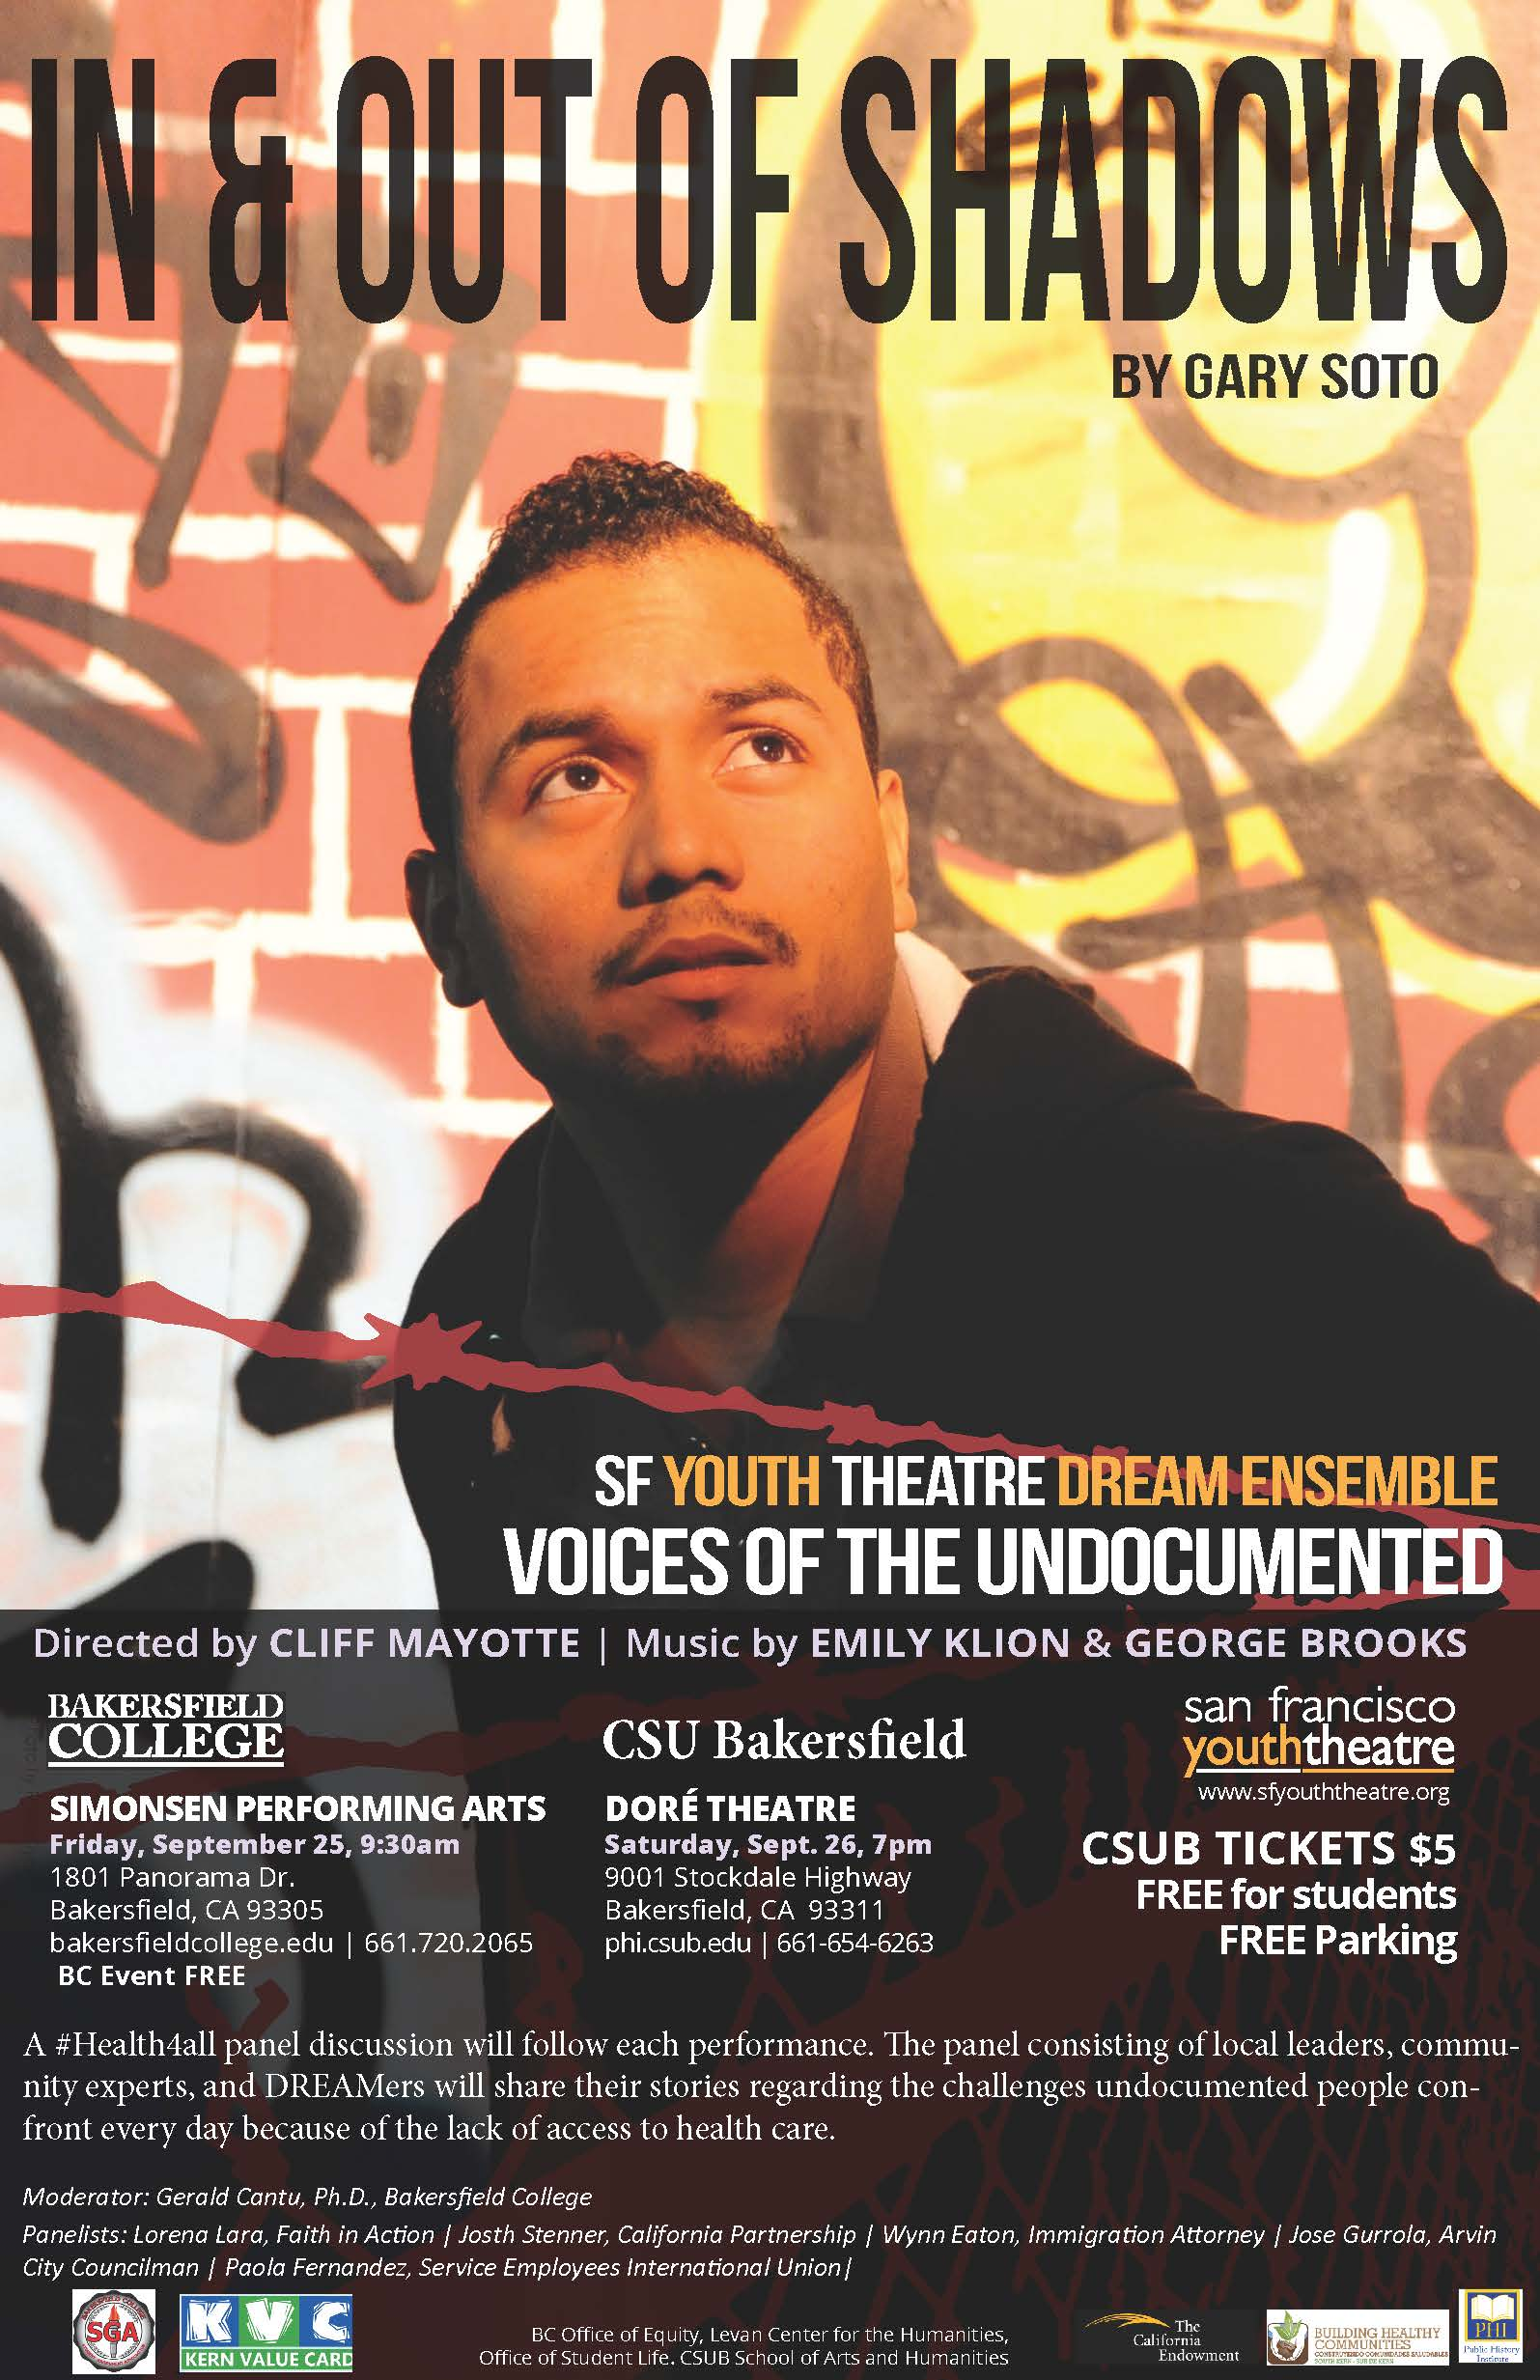 In & Out of Shadows by Gary Soto. Presented by San Francisco Youth Theatre Dream Ensemble at the SPARC Indoor Theatre Friday, Sept. 25 at 9:30 am. Free!